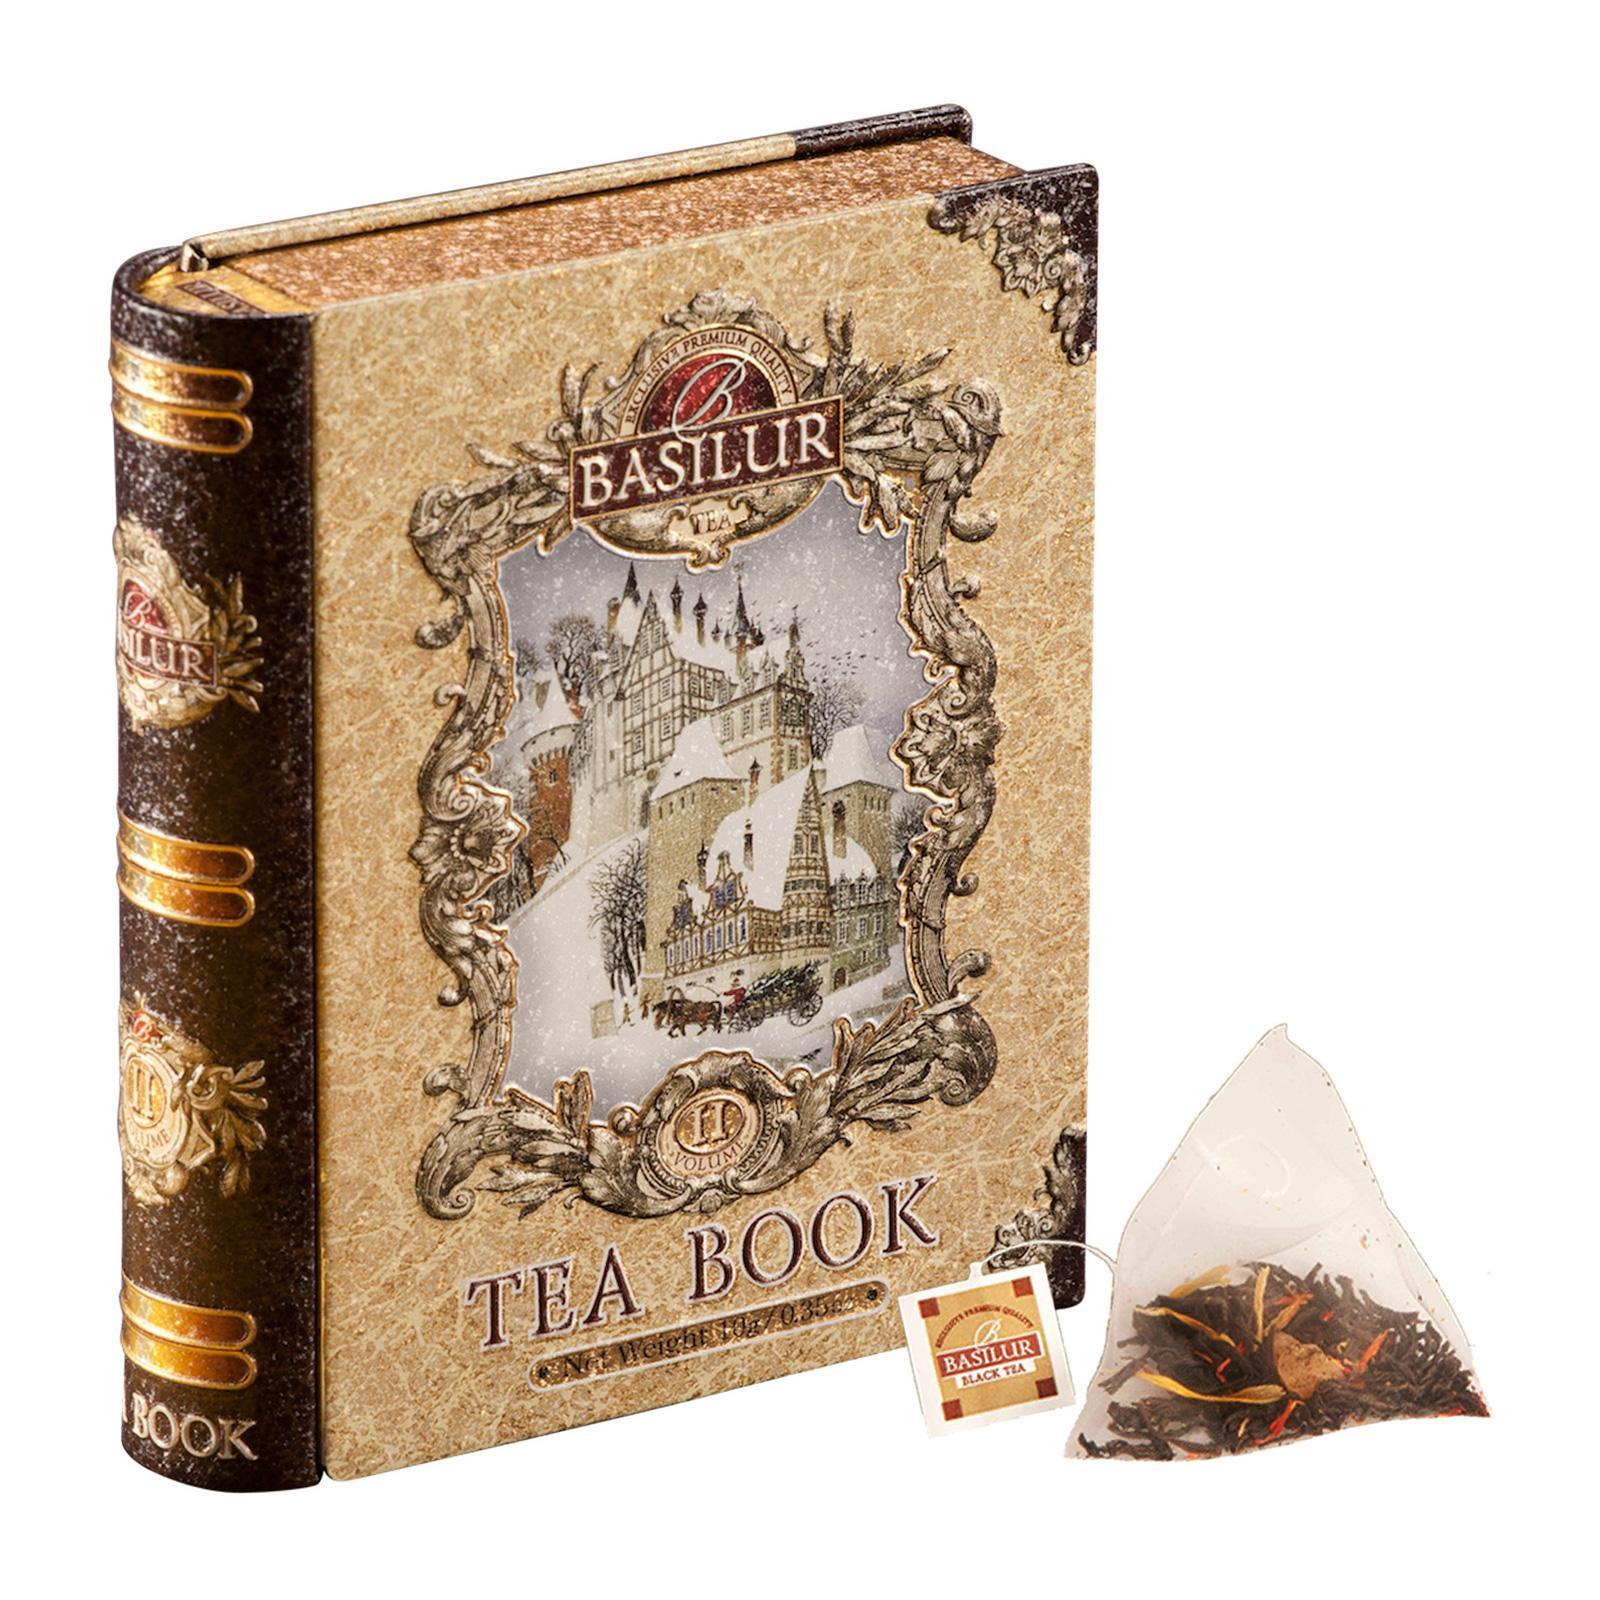 Basilur Miniature Tea Book (Christmas Spices Black Tea)